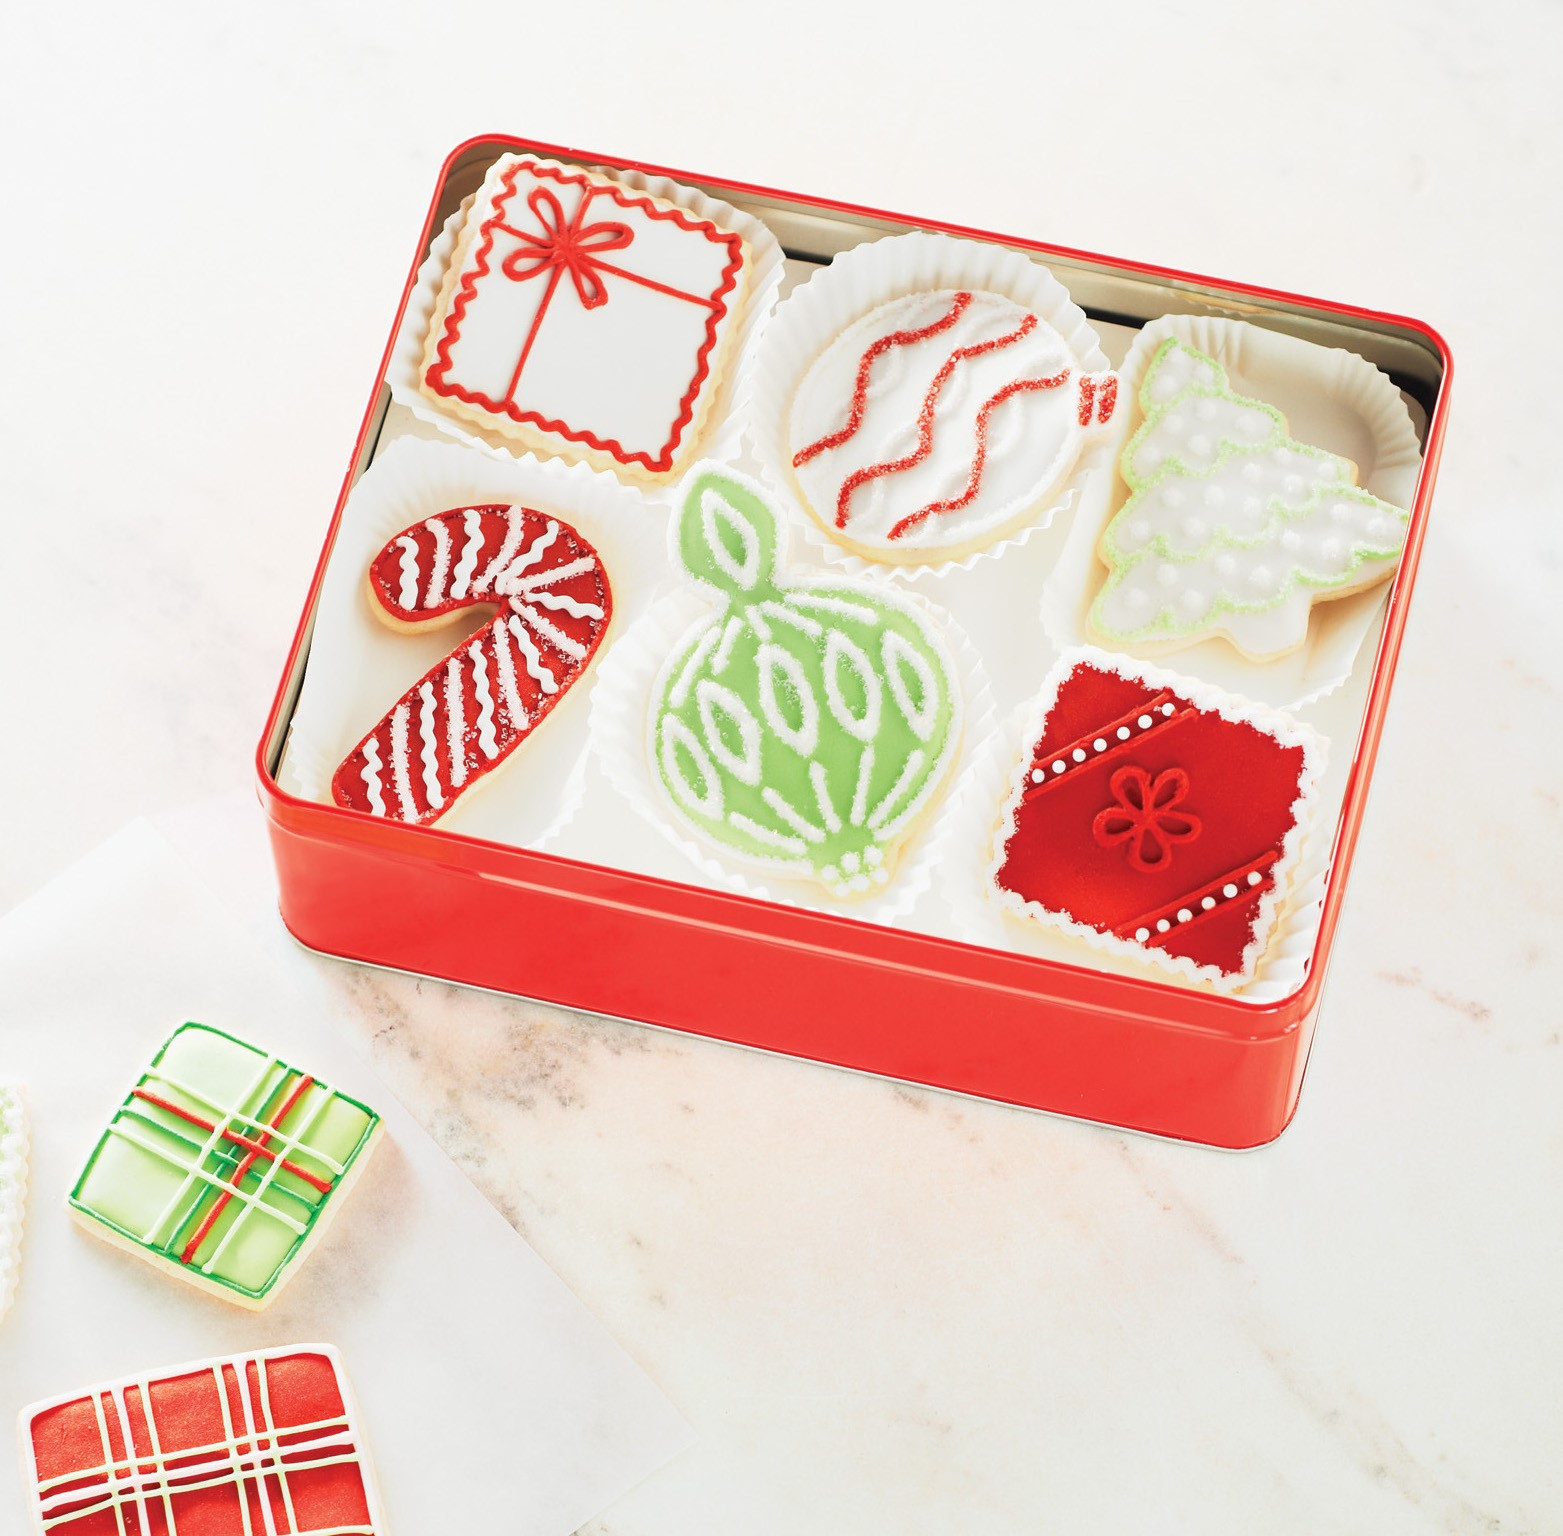 holiday gift box with decorated cookies inside